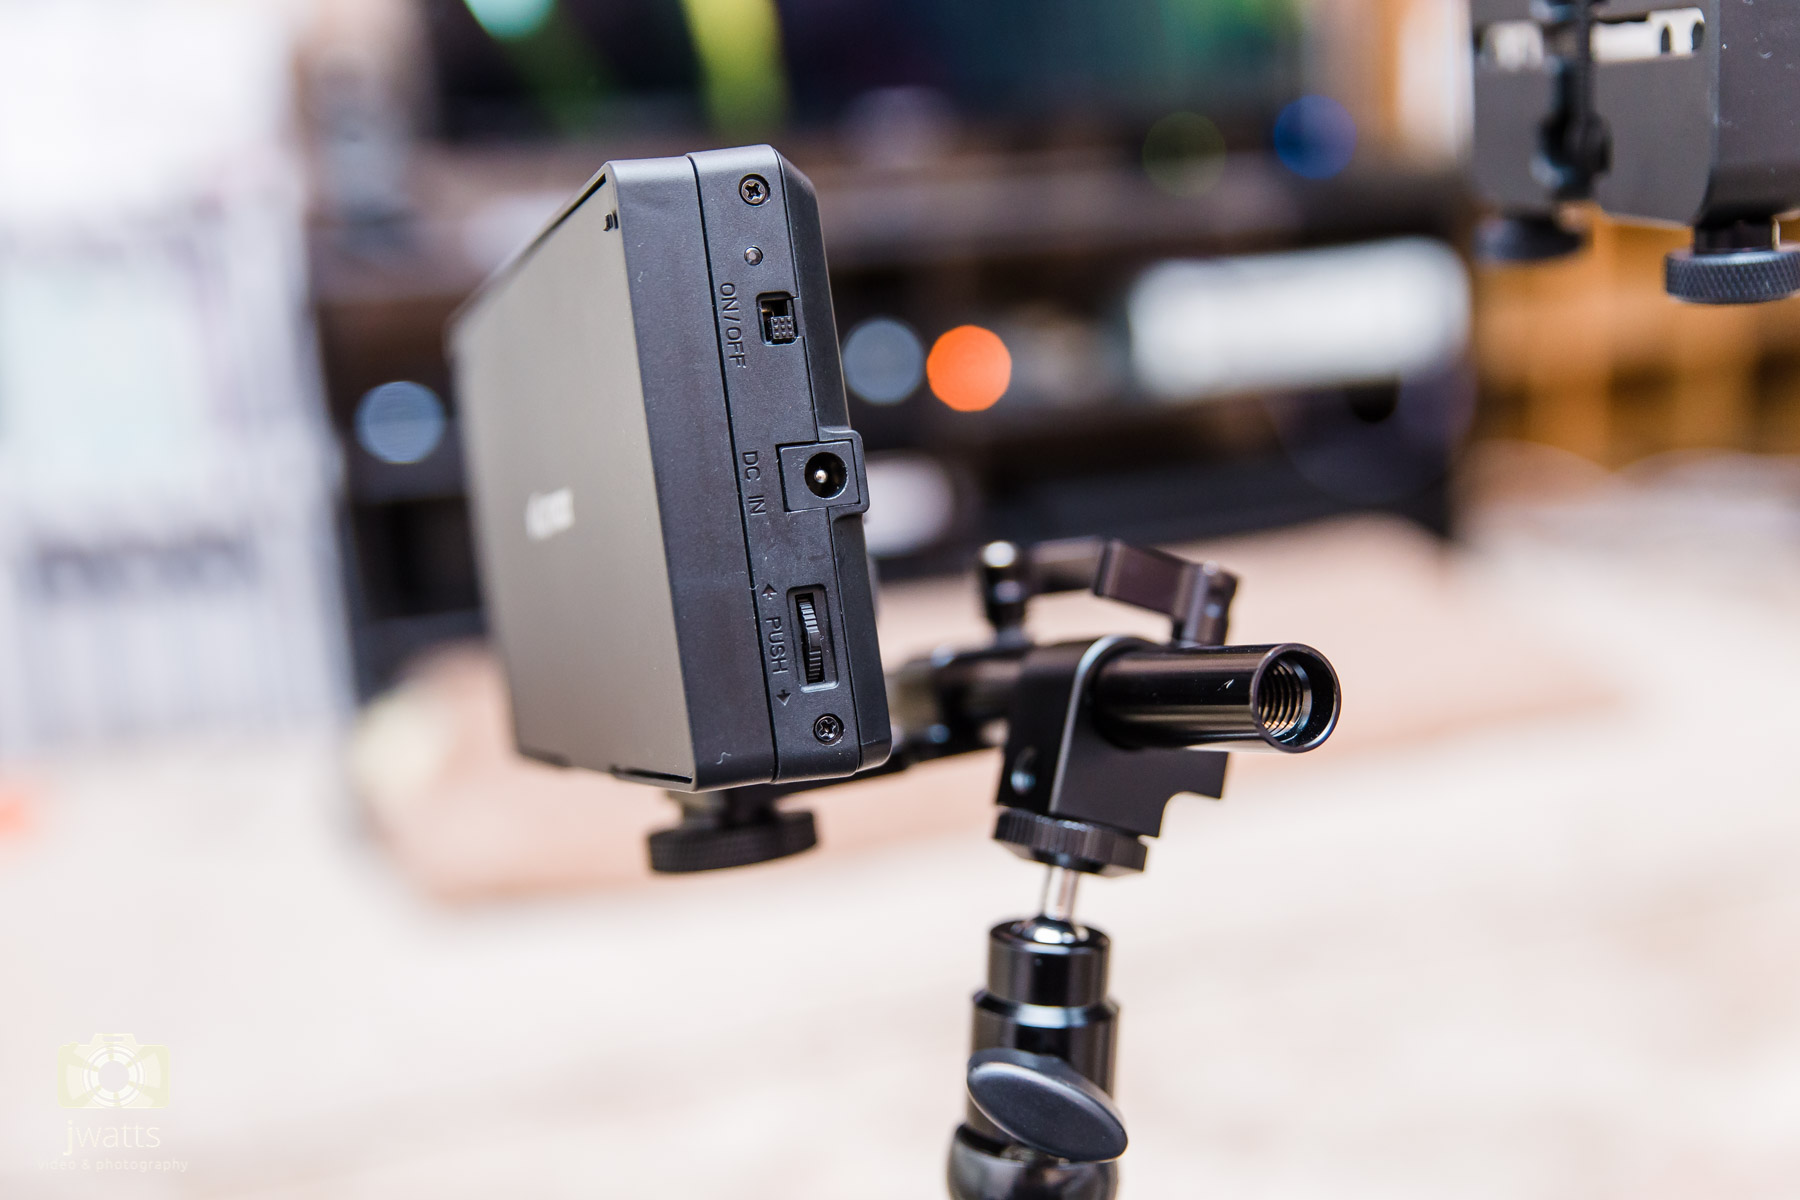 How to attach an external monitor to your DSLR camera for under £40